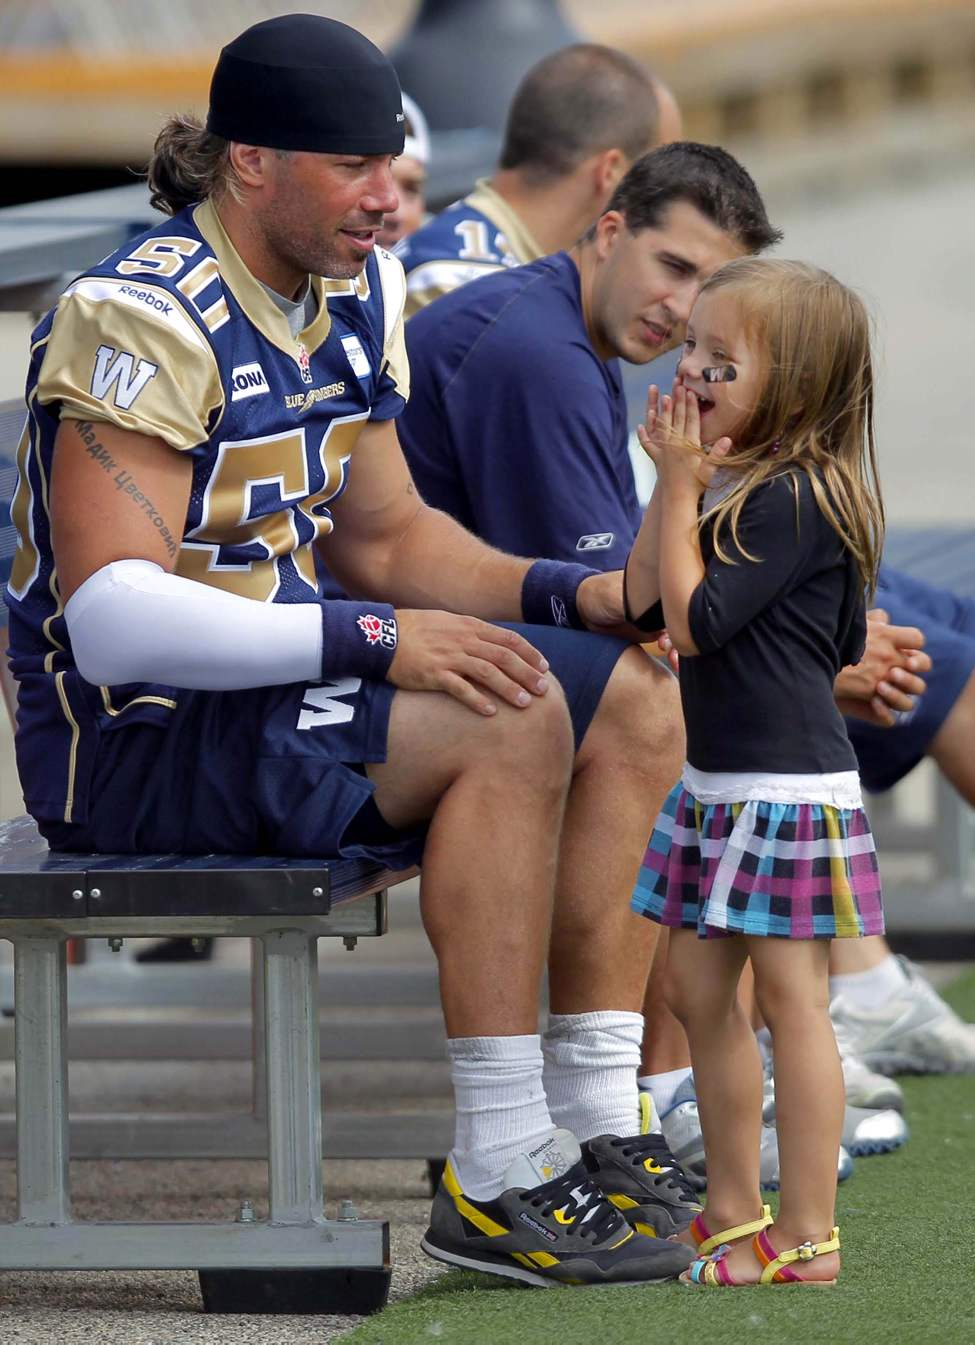 Winnipeg Blue Bomber Chris Cvetkovic has a moment with his daughter Payton,5, during a break in practice. July 25, 2012  (BORIS MINKEVICH / WINNIPEG FREE PRESS)